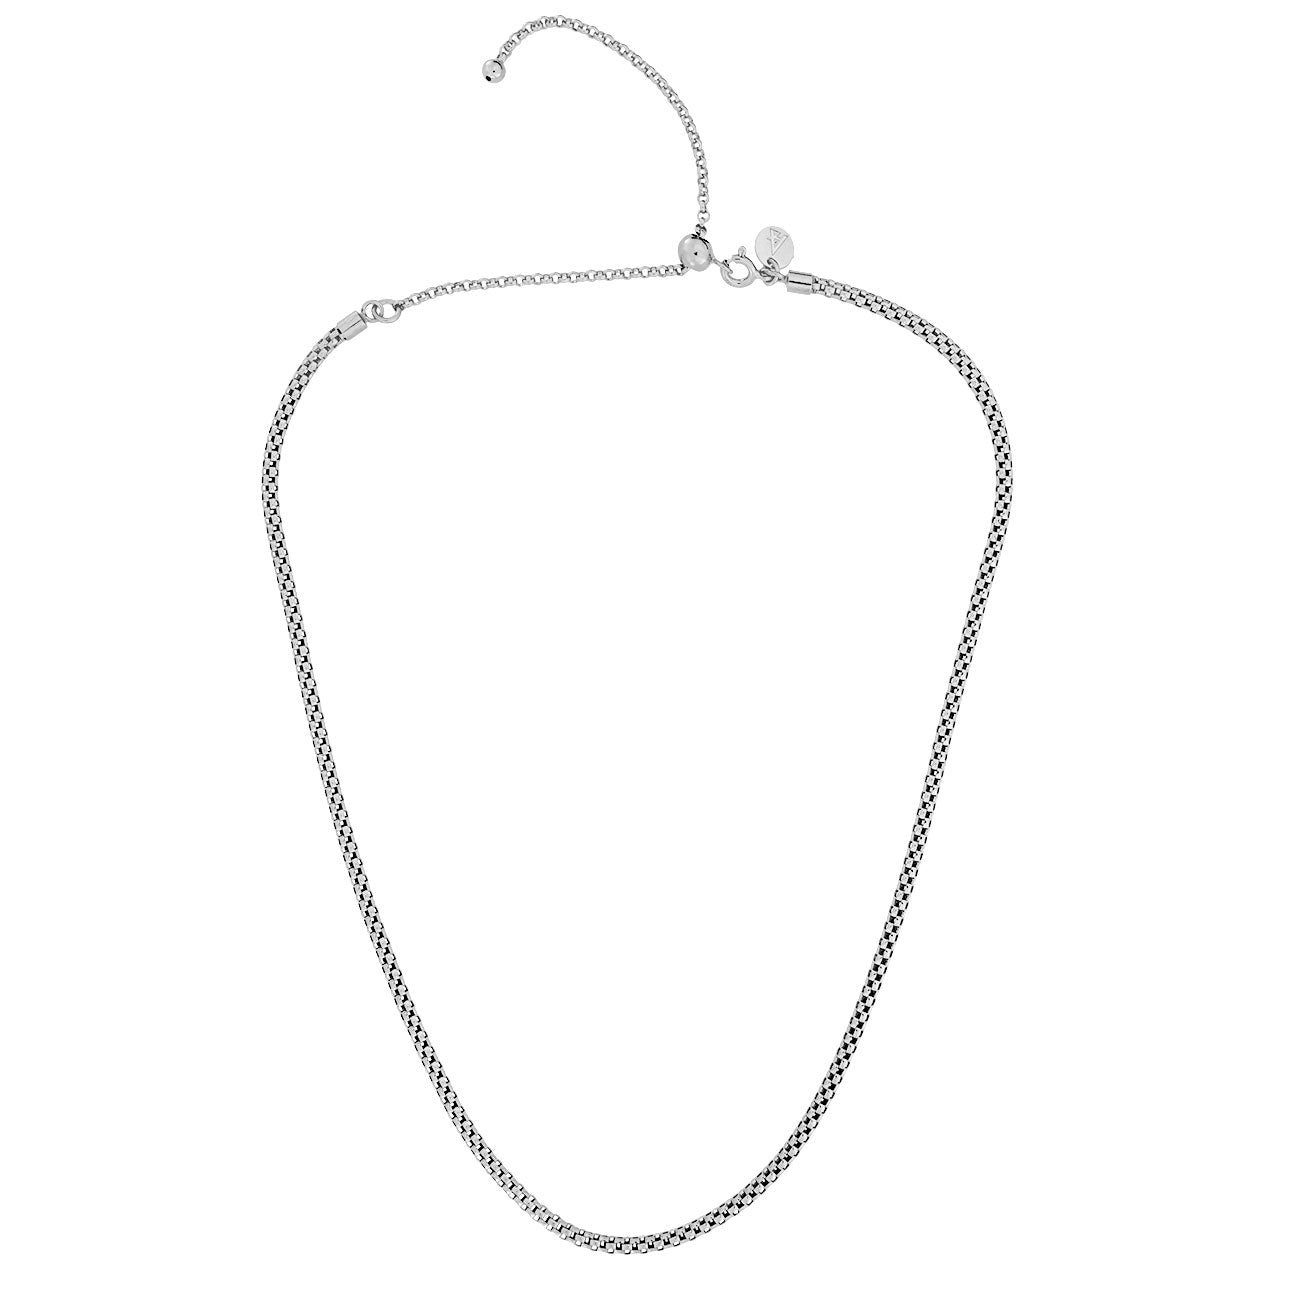 Adjustable Rounded Box Chain Necklace